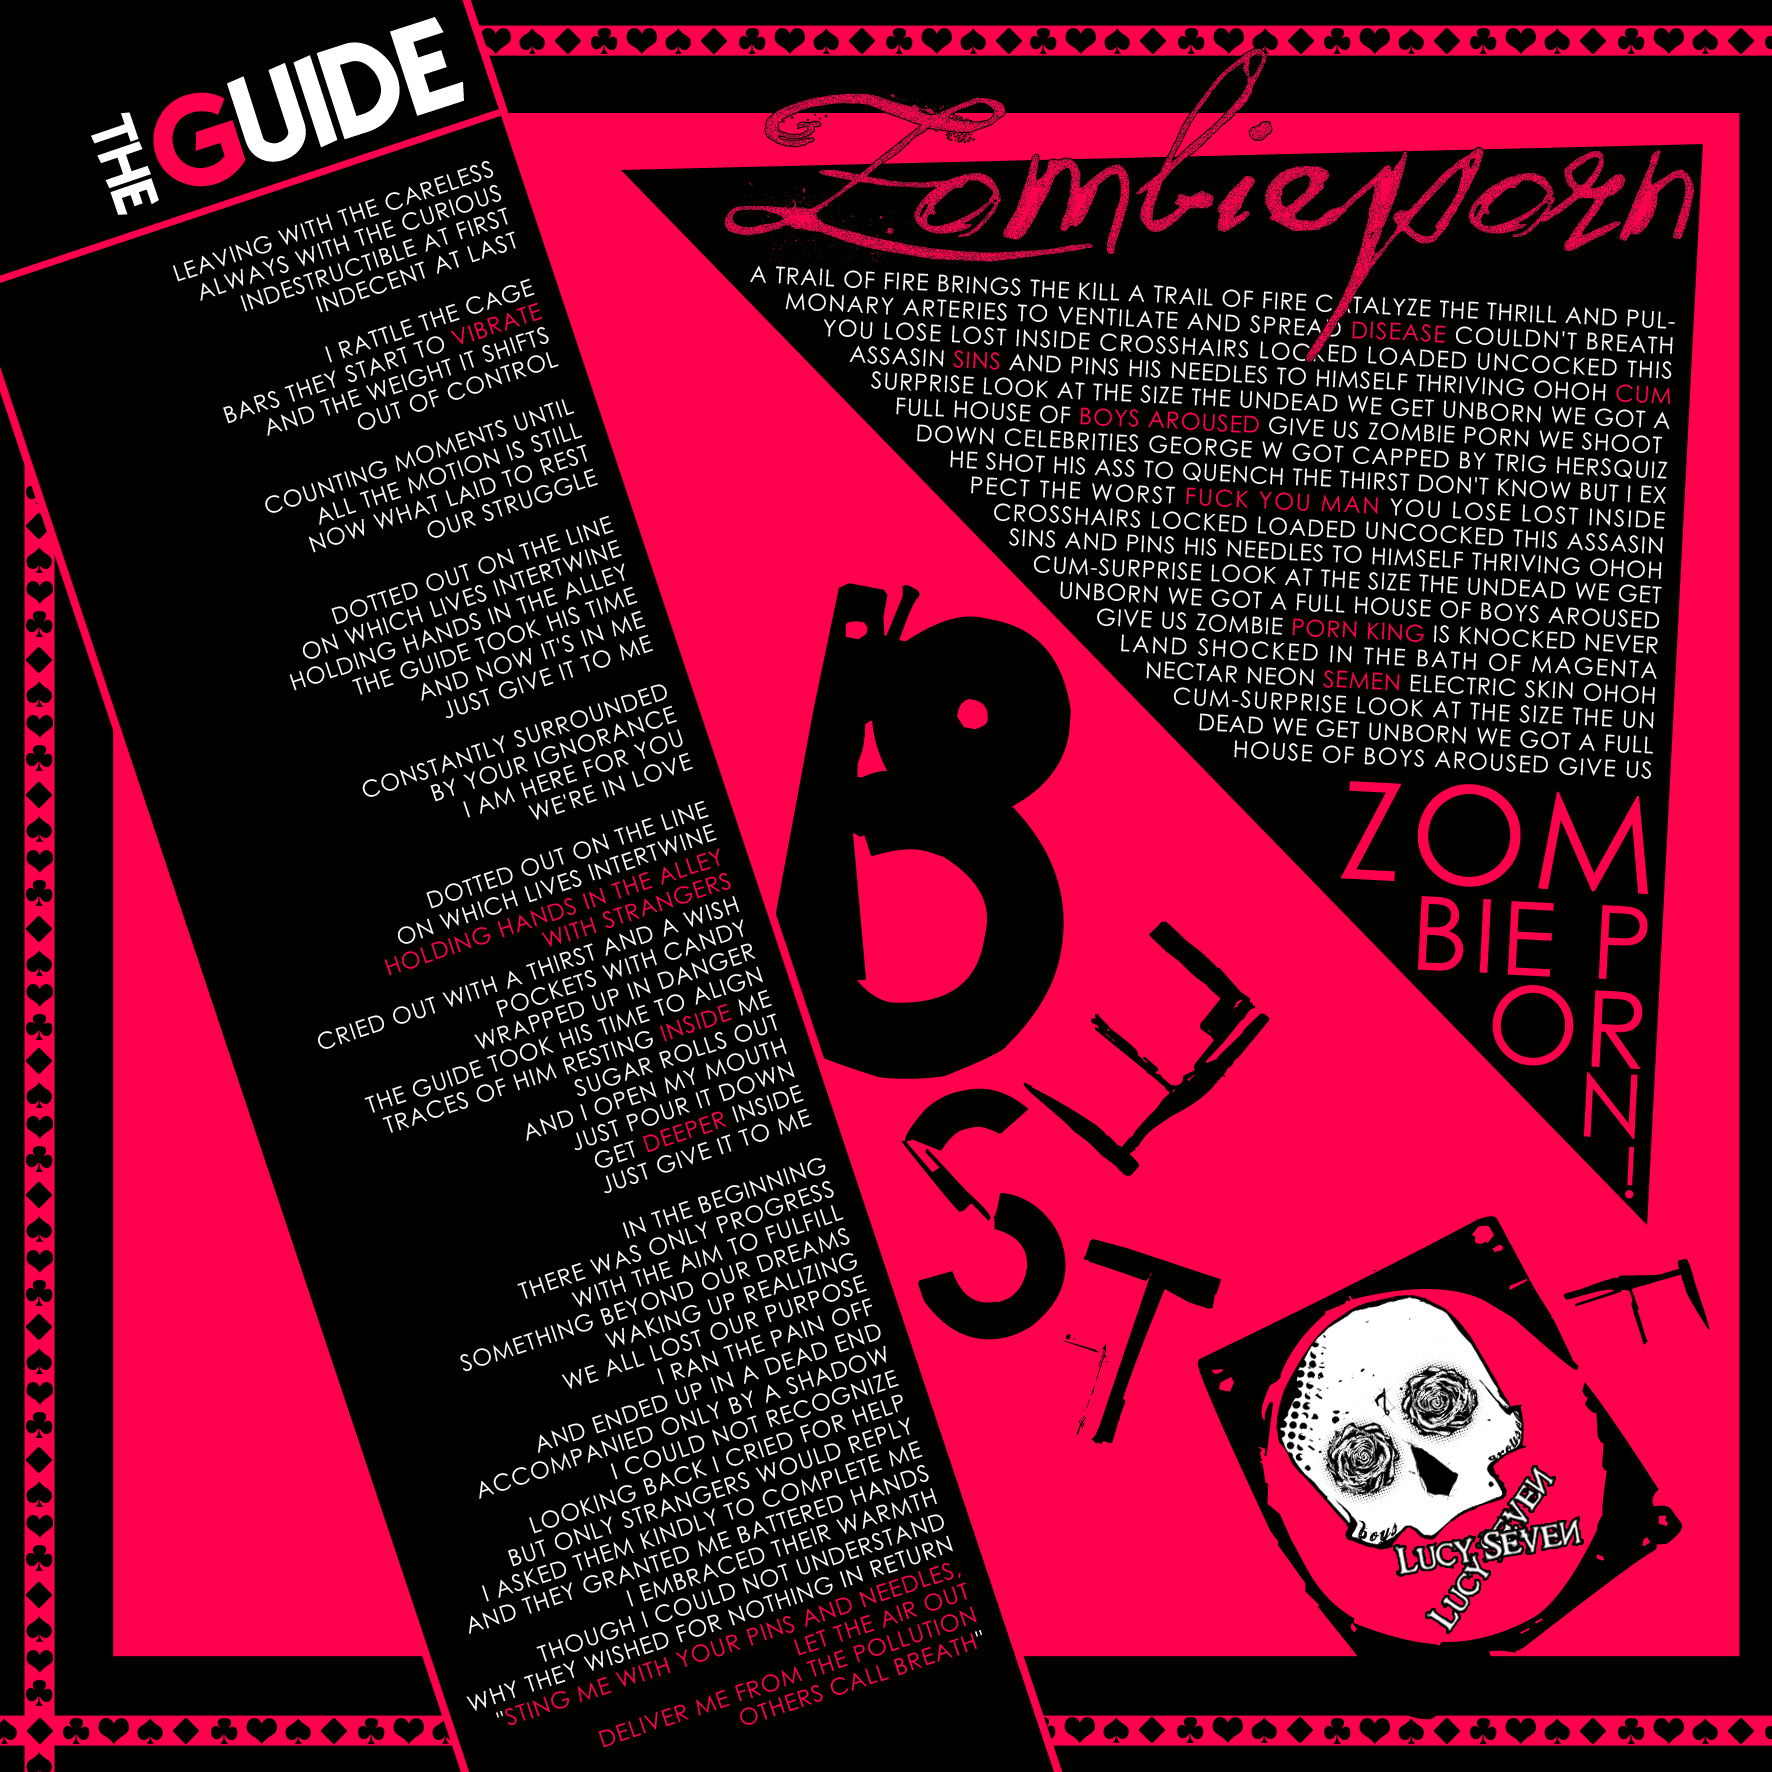 04-the guide + zombie porn